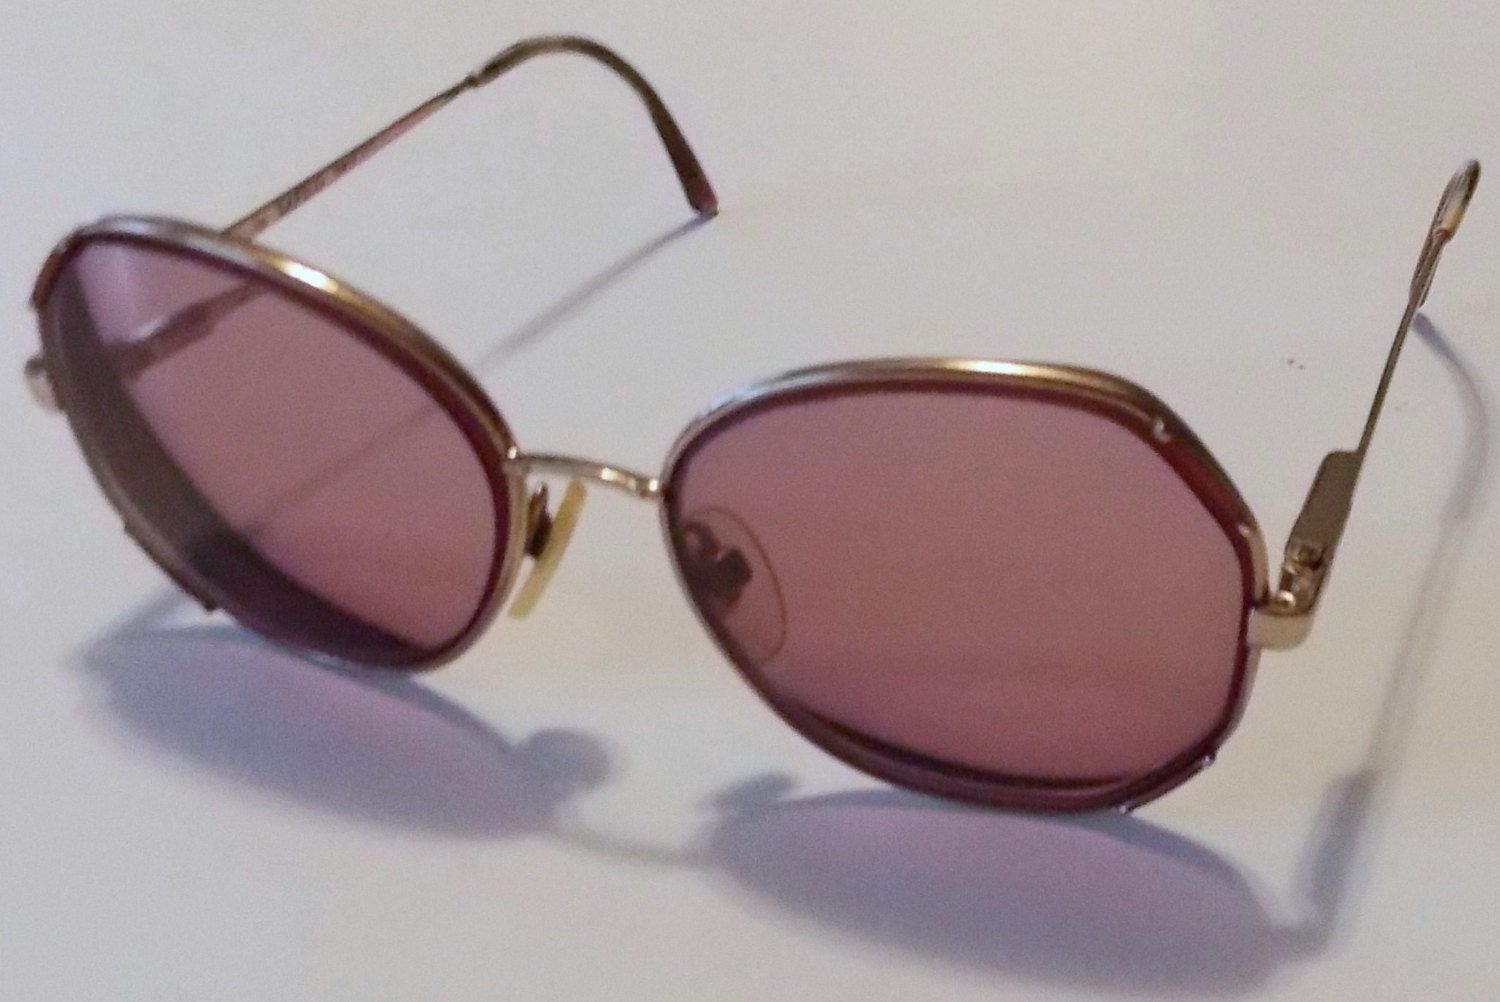 Gold Color Eyeglass Frames : 1970s Gold Colored Metal Rim Glasses Christian by ...